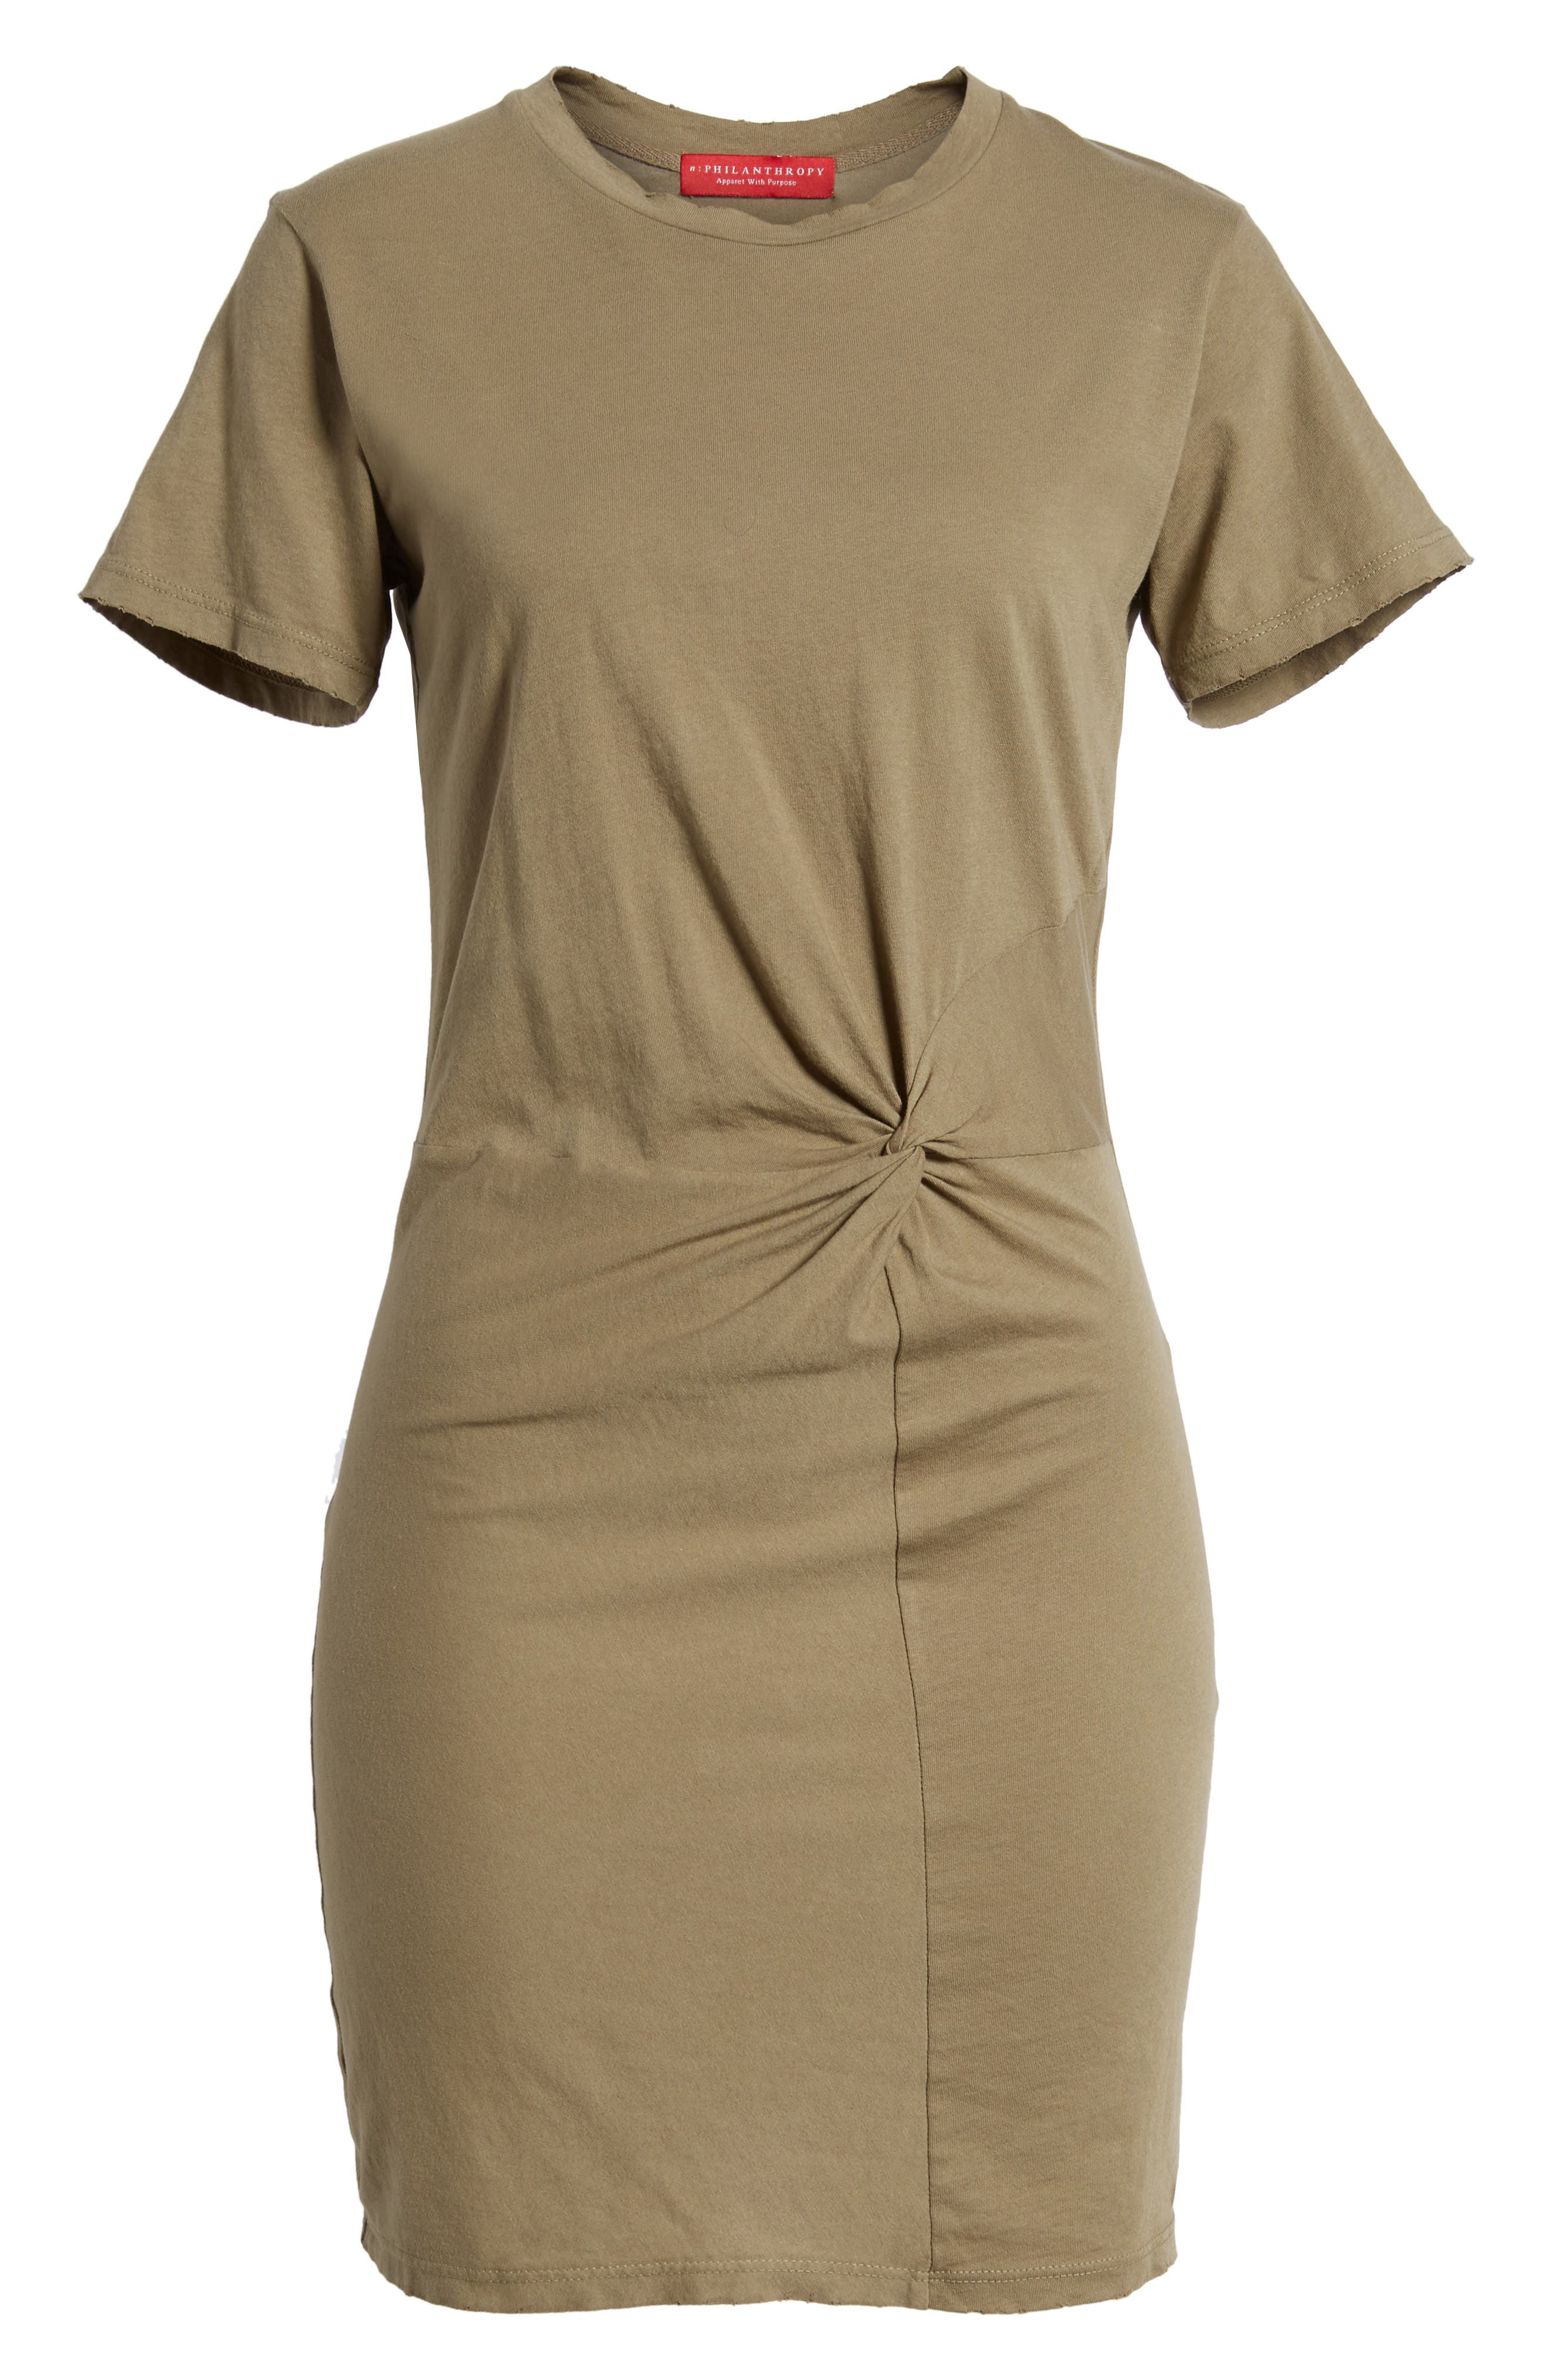 Jazz Knotted T-Shirt Dress,                             Alternate thumbnail 6, color,                             Army